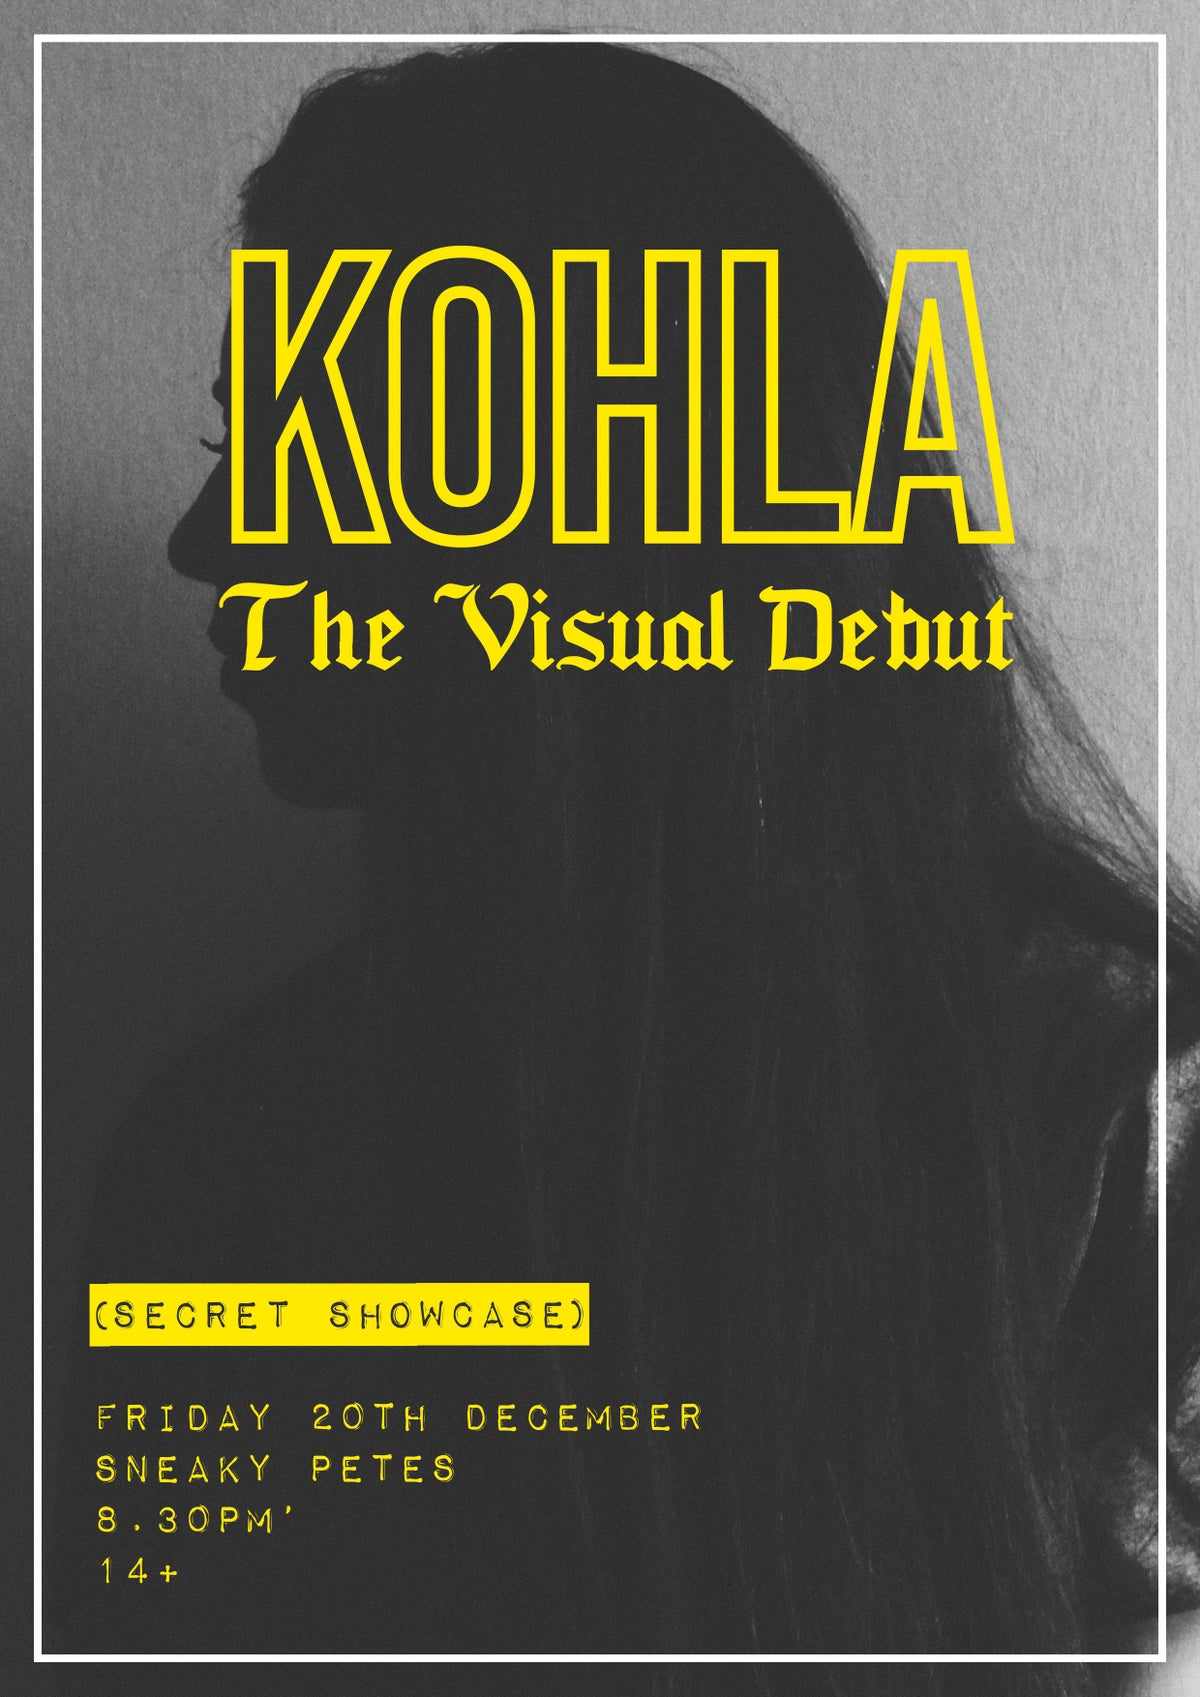 Image of Kohla: The Visual Debut (Secret Showcase) - Live at Sneaky Petes